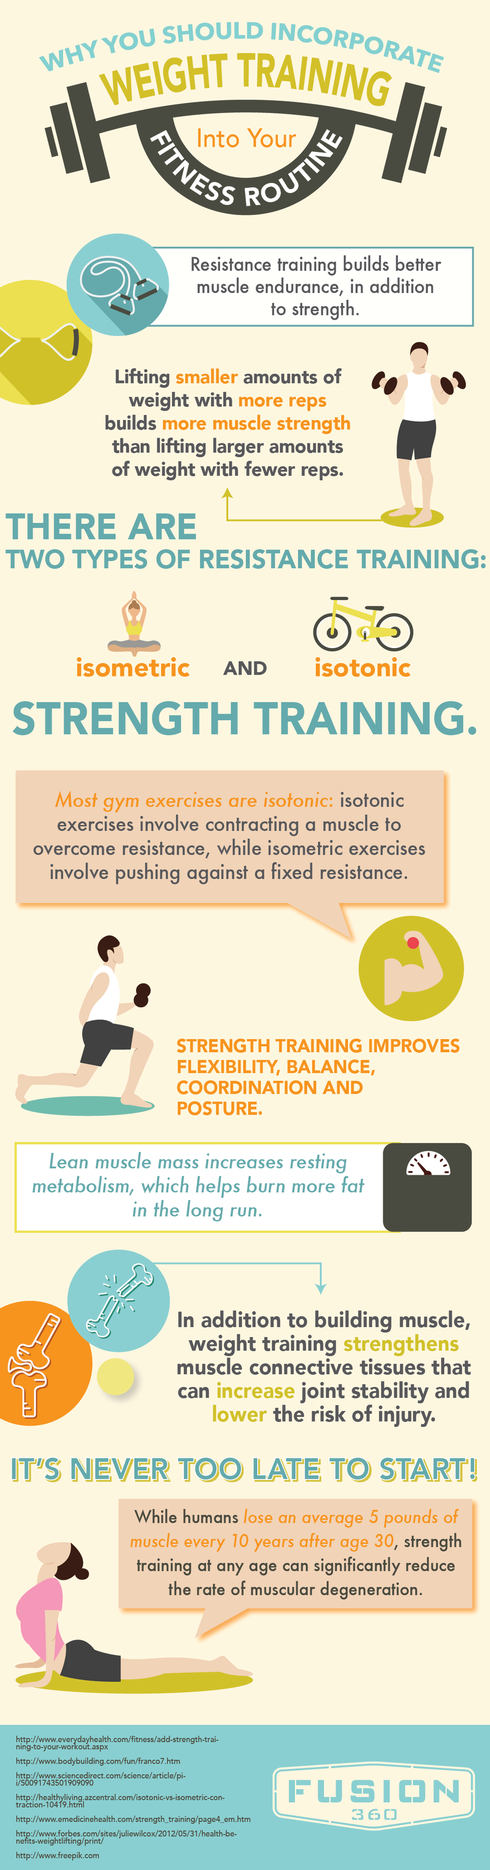 Why You Should Incorporate Weight Training Into Your Fitness... via Lucas Miller